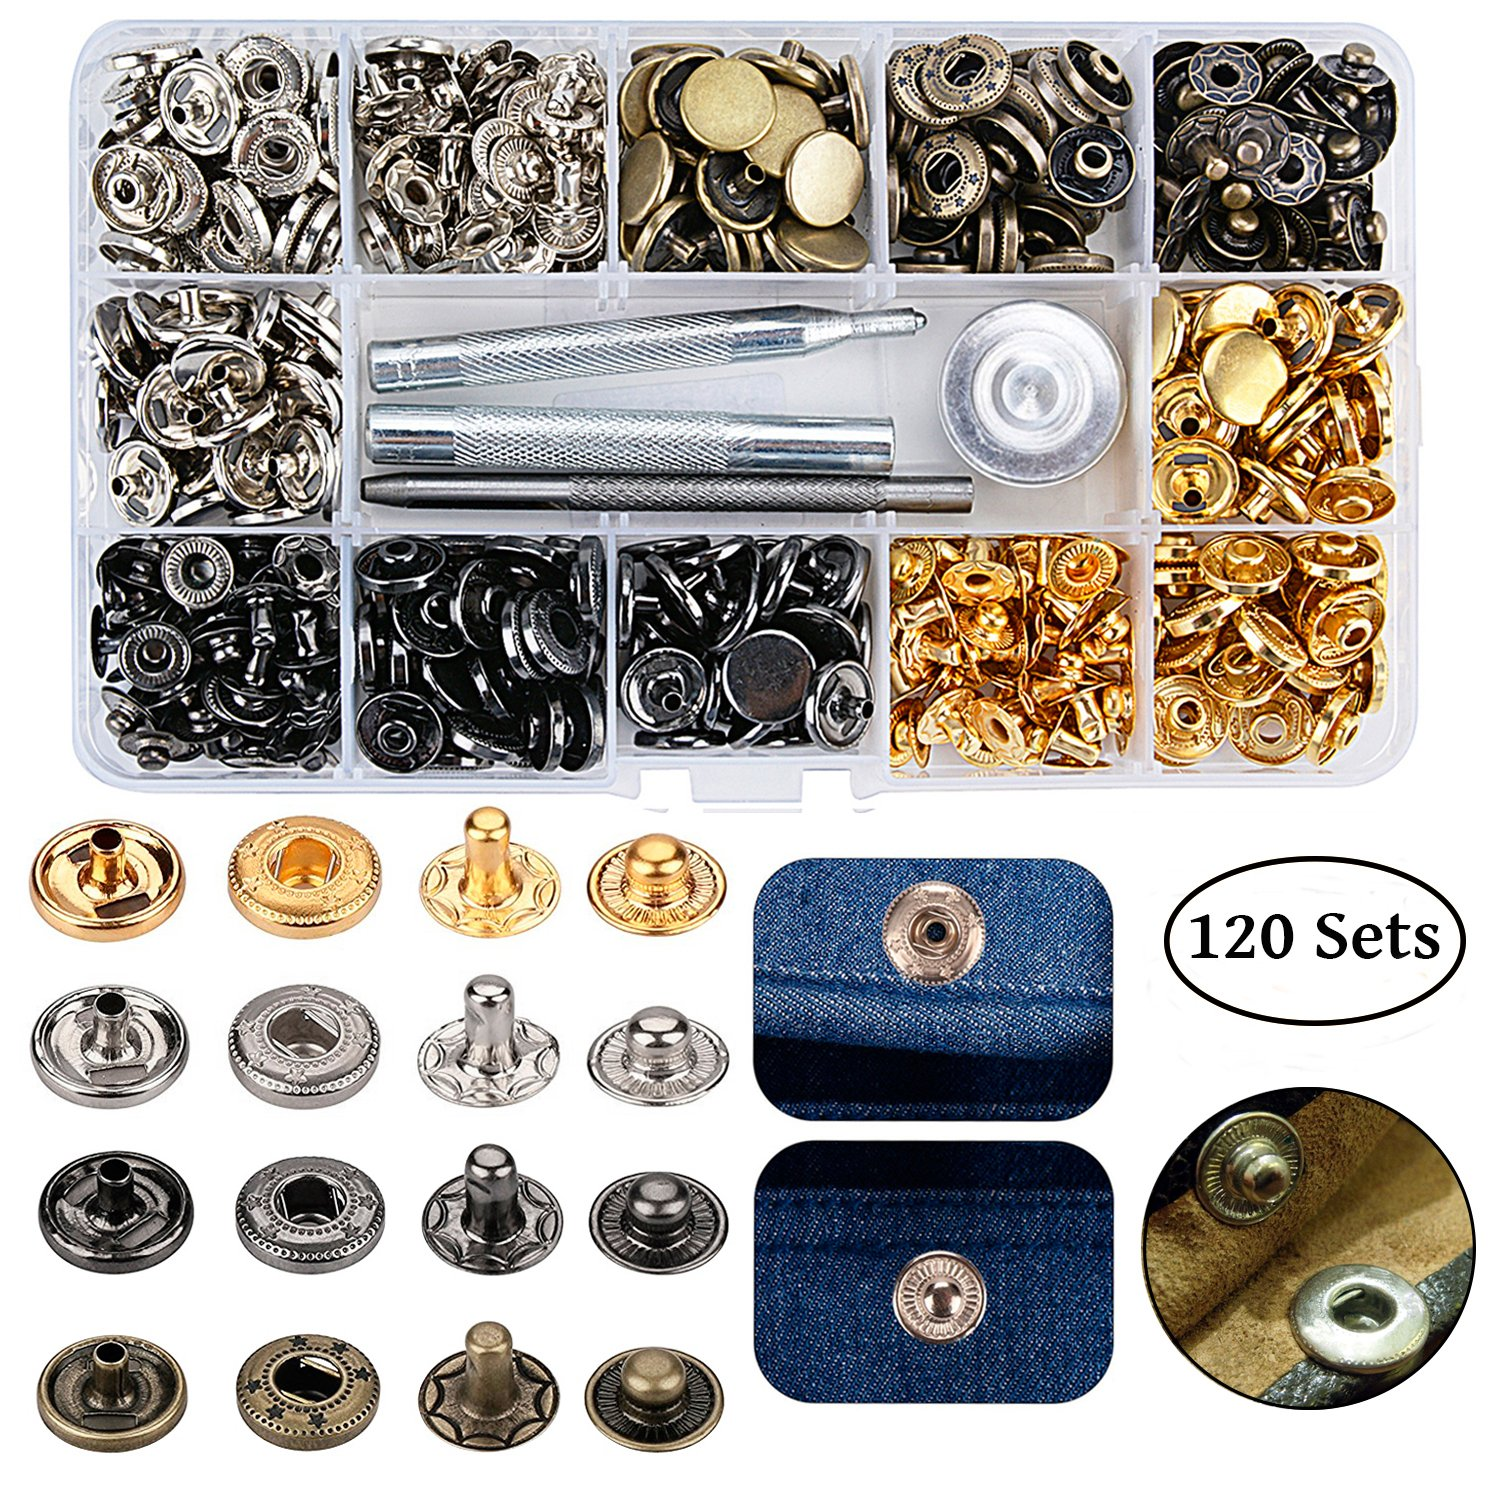 120 Sets Snap Fastener Kit, Outggek Leather Snap Buttons Press Studs with 4PCS Fixing Tools, Metal Snaps for Clothing Leather Bracelet Jeans Wear Jacket Bags Belts, 633(12.5mm) Outgeek 4337005963